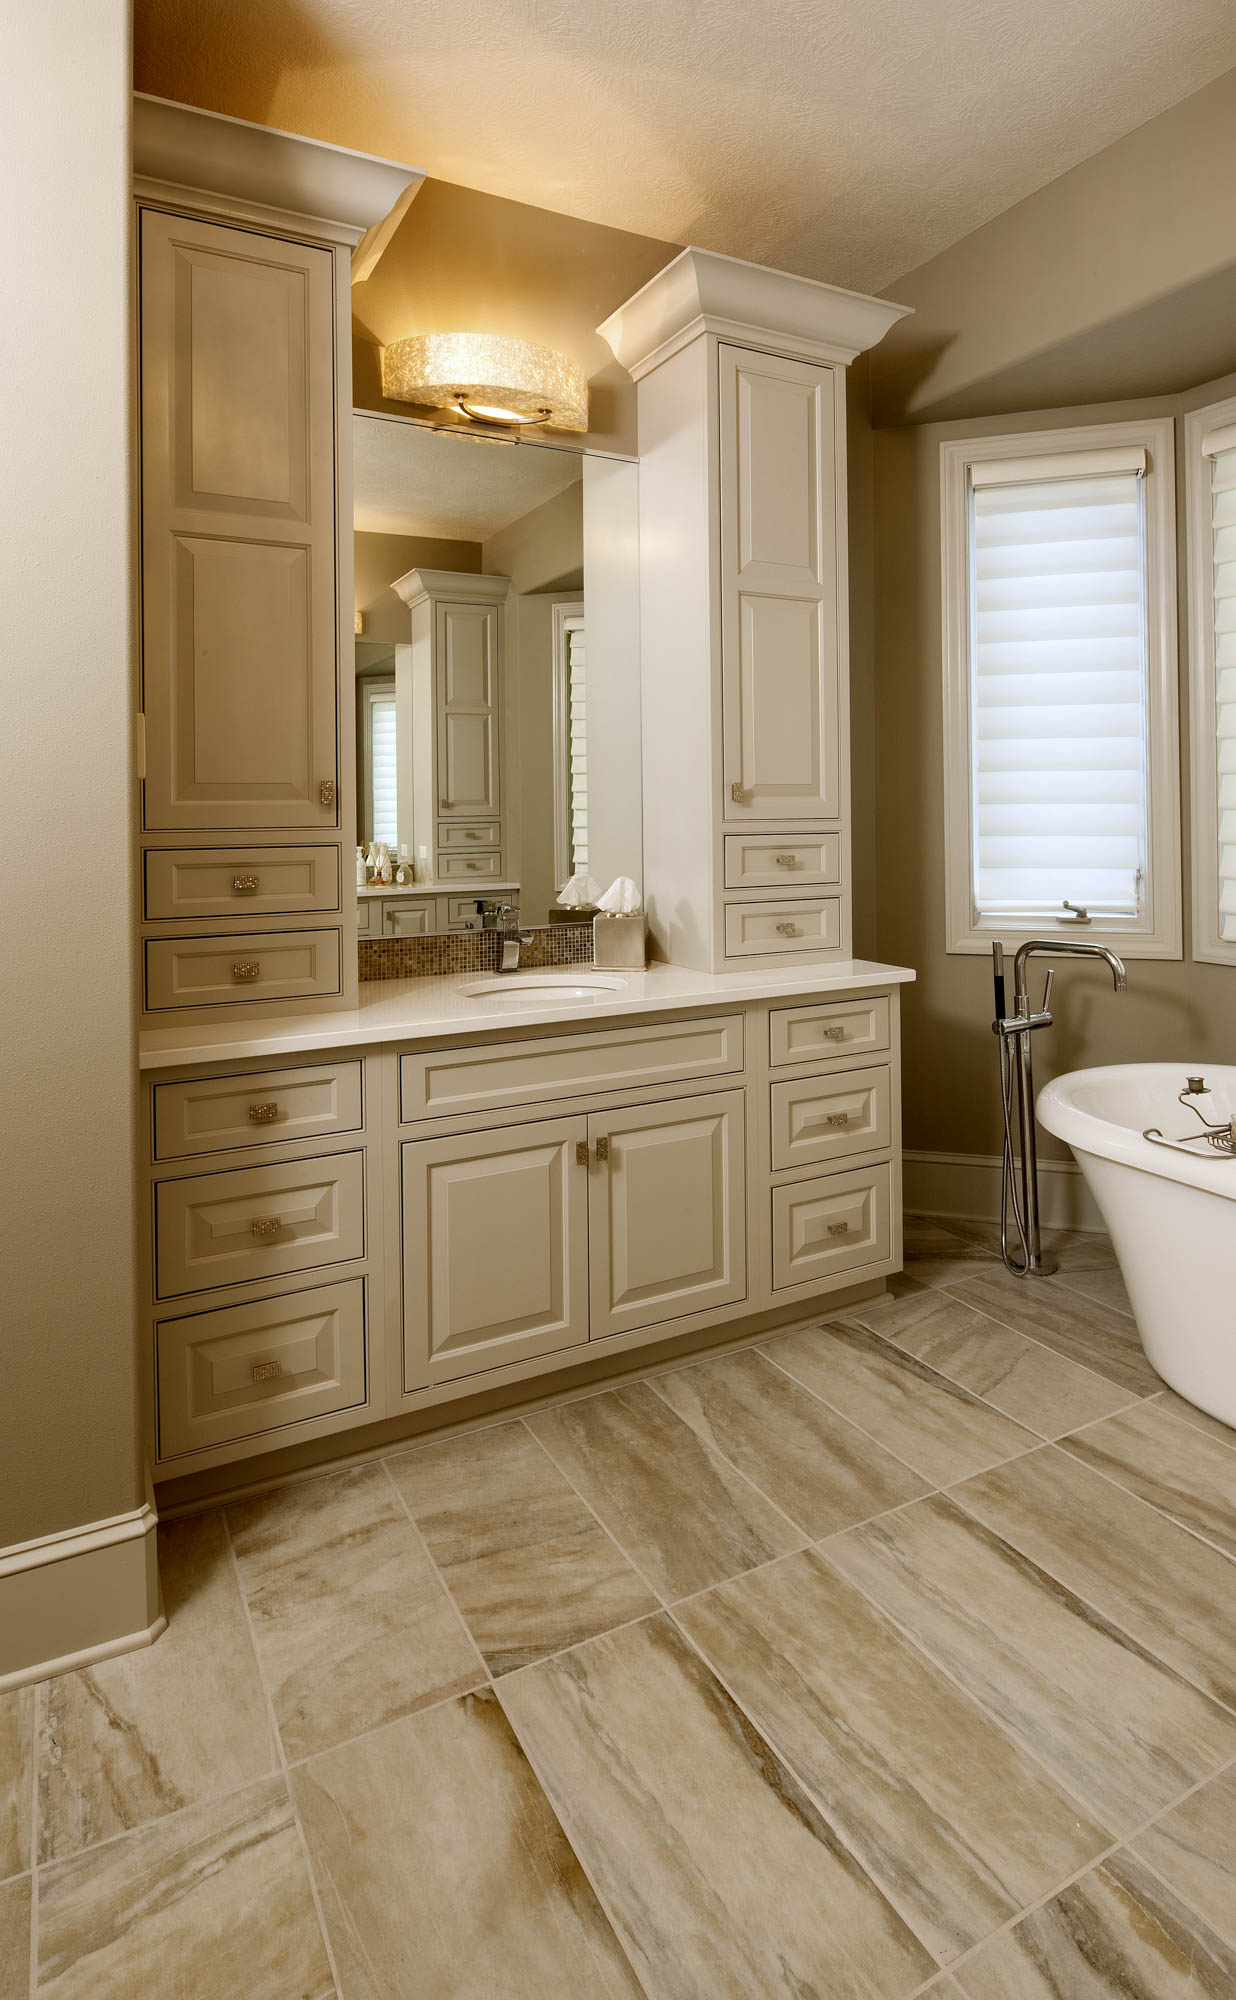 Painted master bathroom vanity in Oyster by Showplace Cabinetry - view 1